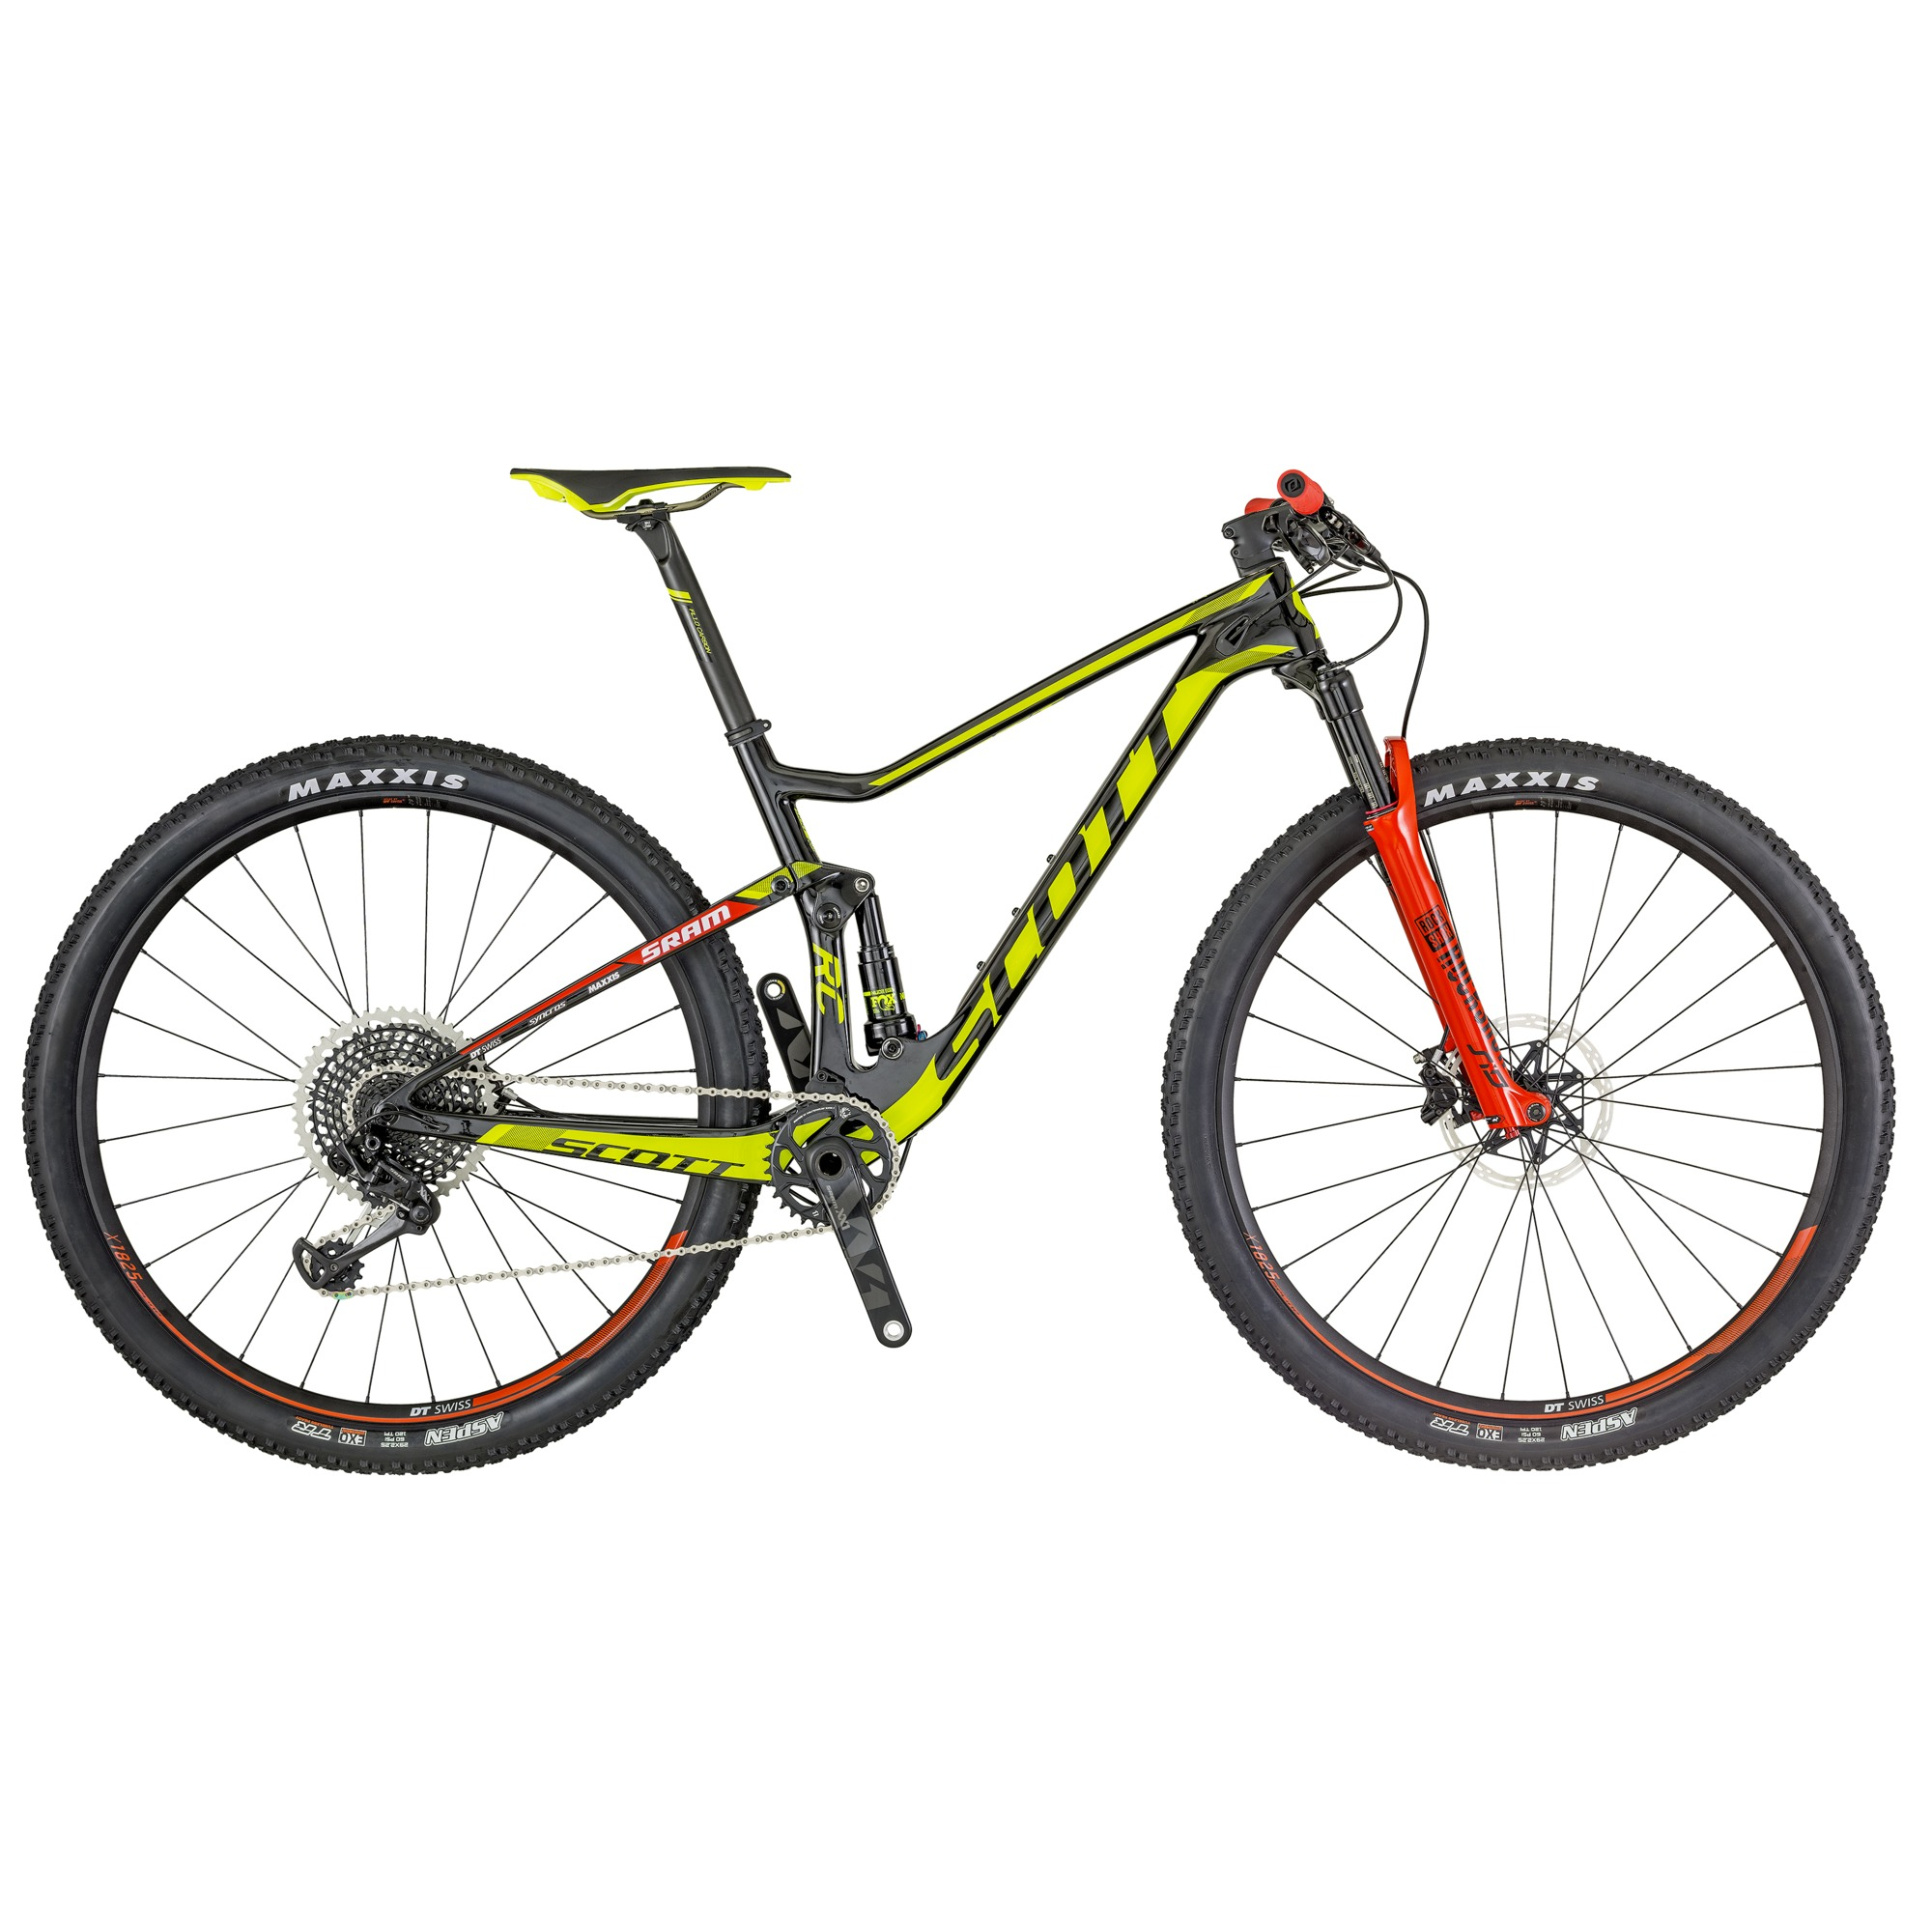 SCOTT SPARK RC 900 WORLD CUP BIKE Image